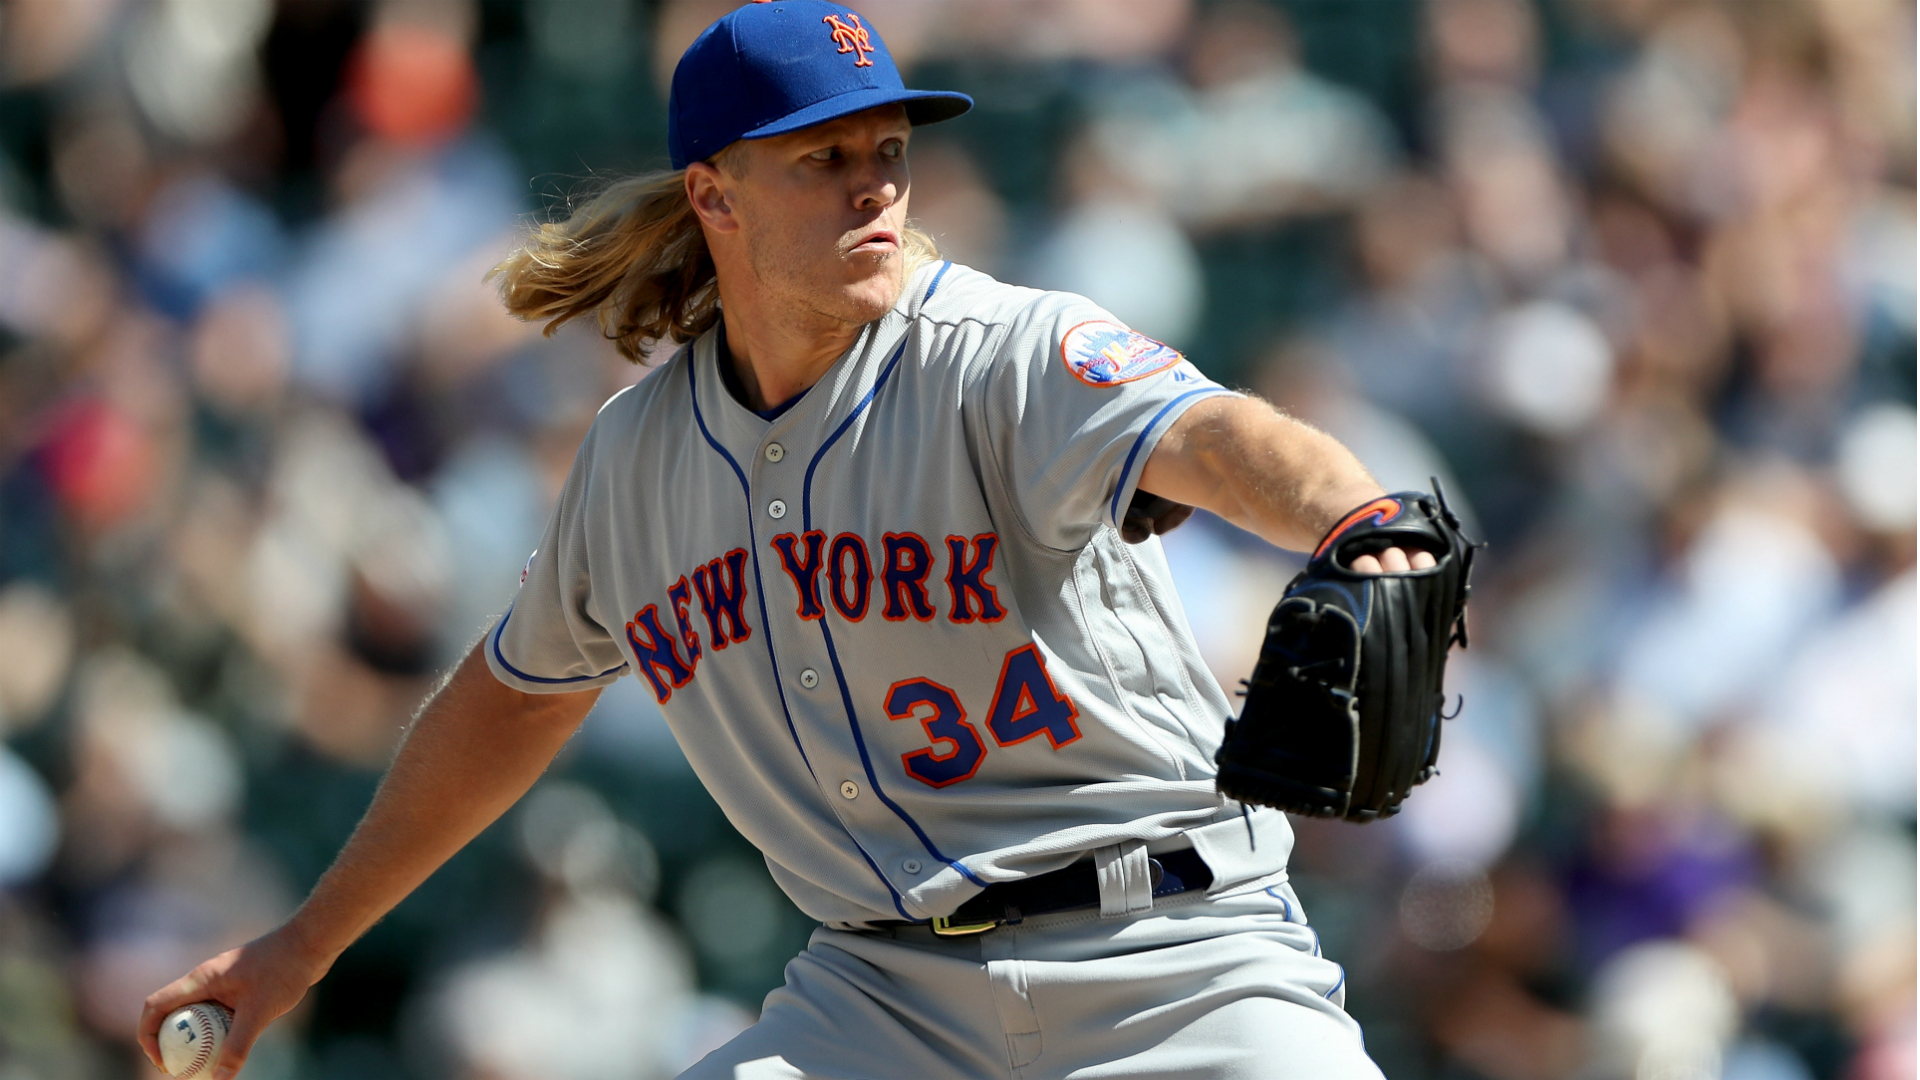 Mets' Noah Syndergaard at loss over misguided slider, says he needs 'Dr. Phil or something'